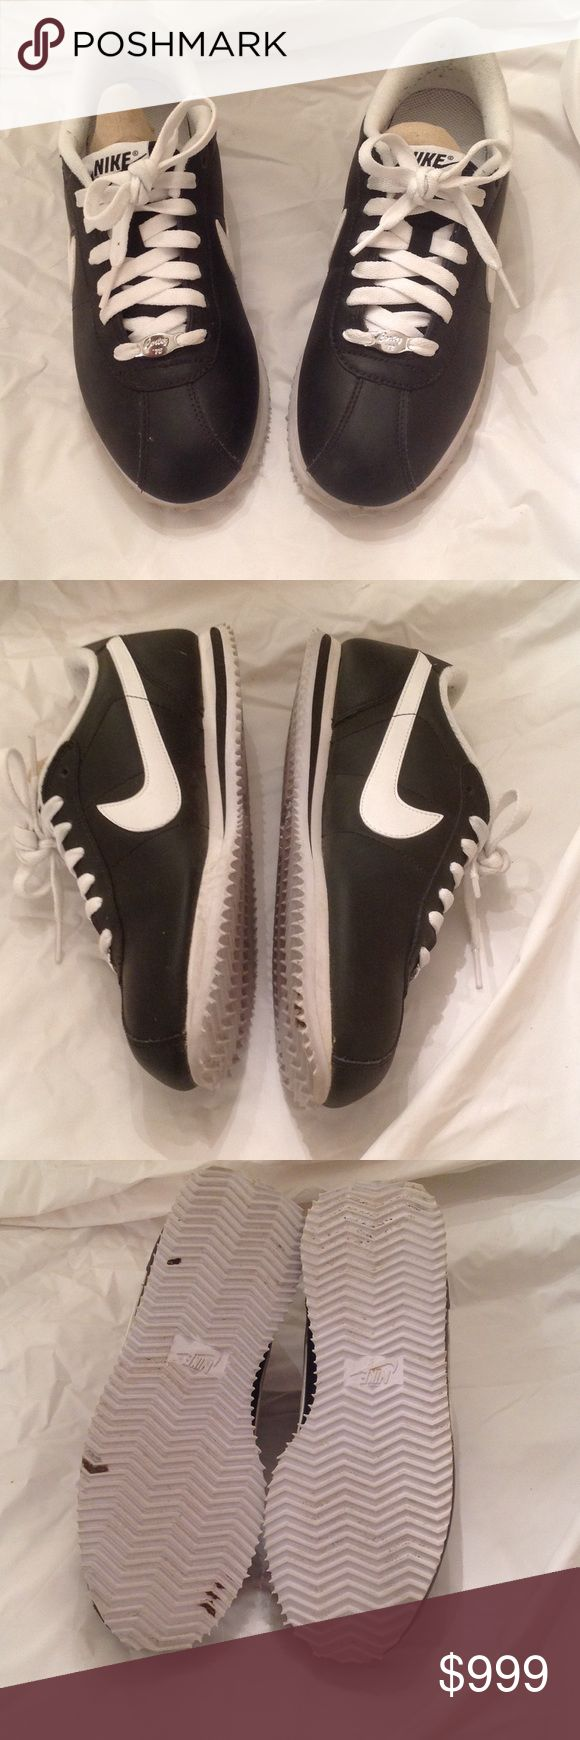 Rare Black Nike Cortez Leather Gently used! Excellent condition. On the inside, slight pilling at the inside ankle. Other than that, great condition! Please see pics and ask questions ♥️♥️ Nike Shoes Athletic Shoes